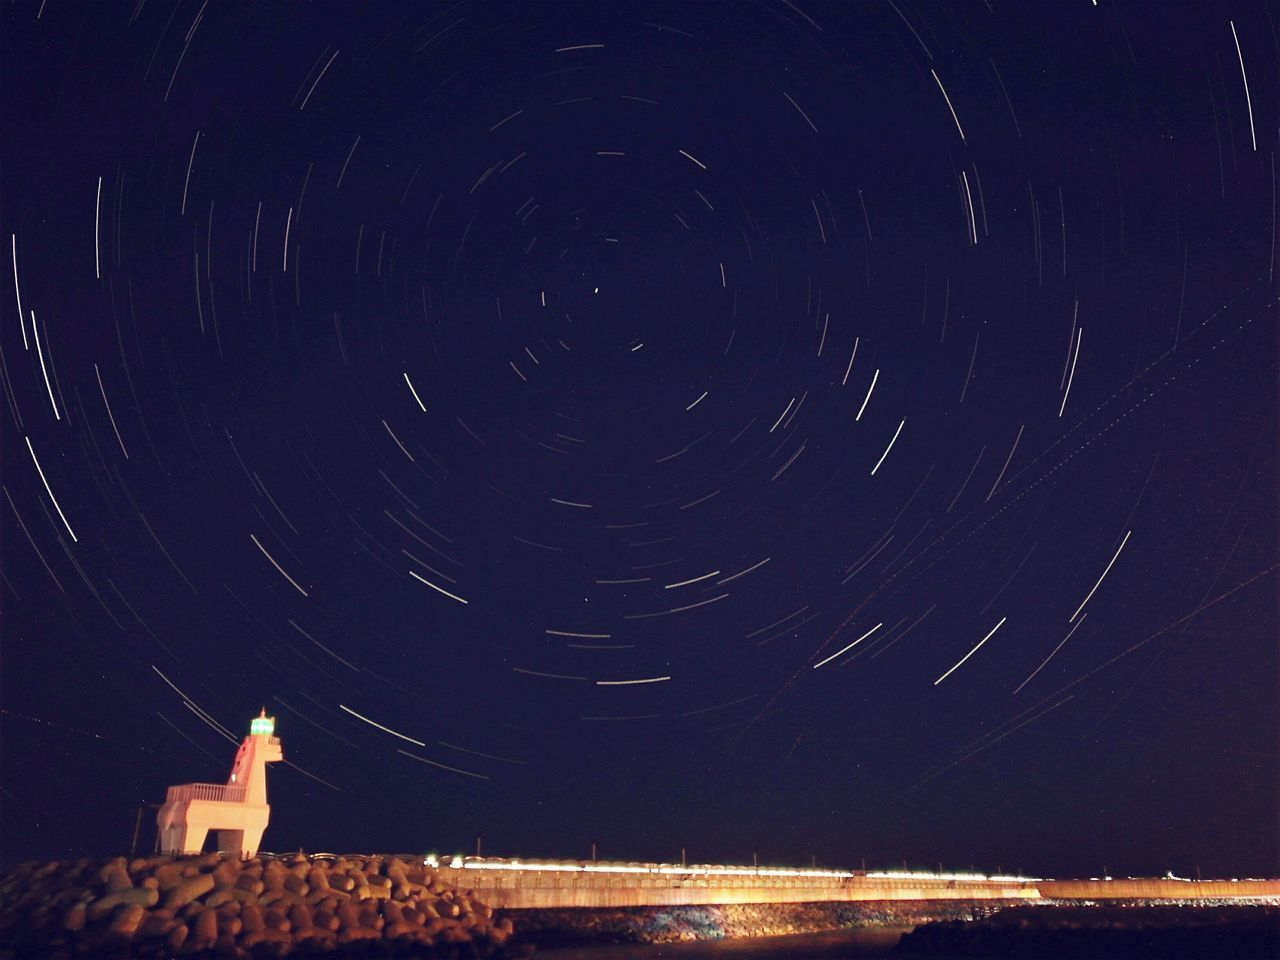 Night Star - Space Astronomy Space And Astronomy Sky Nature Galaxy No People Star Trail Outdoors Star Field Beauty In Nature Phontograph Mobliephotography PhonePhotography South Korea Jejuisland Jeju Island, Korea